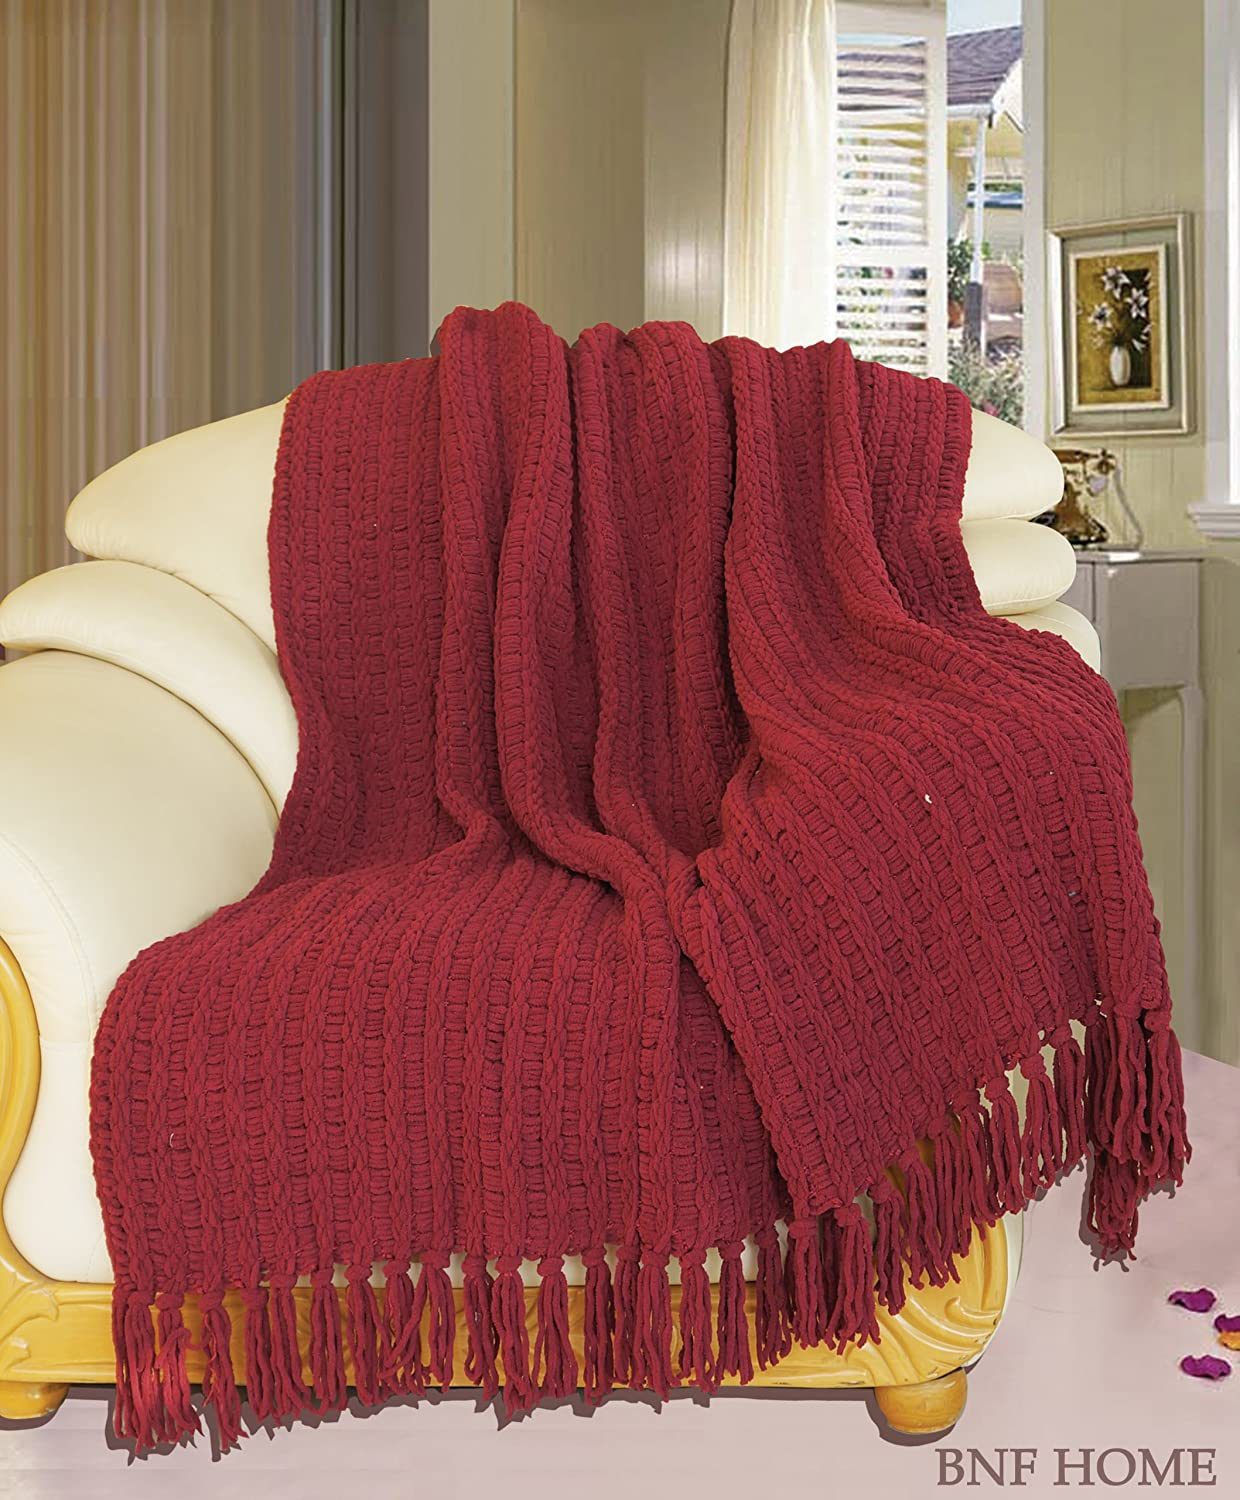 Knitted Throw in Burgundy